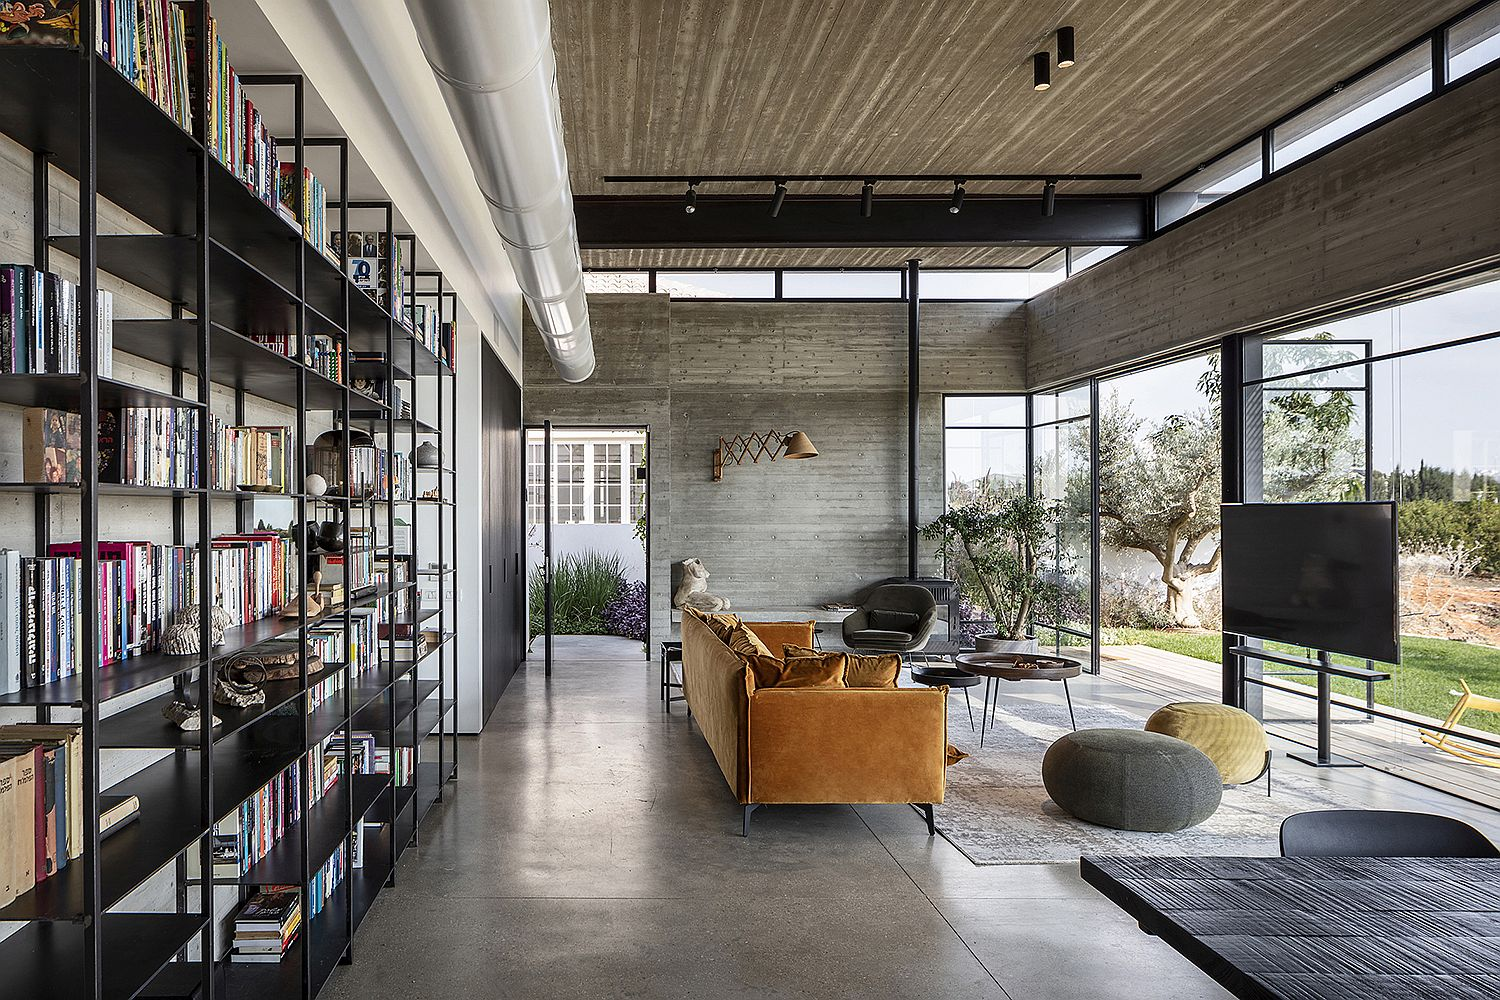 Metal pipes and minimal bookshelf acts unique appeal to the living space